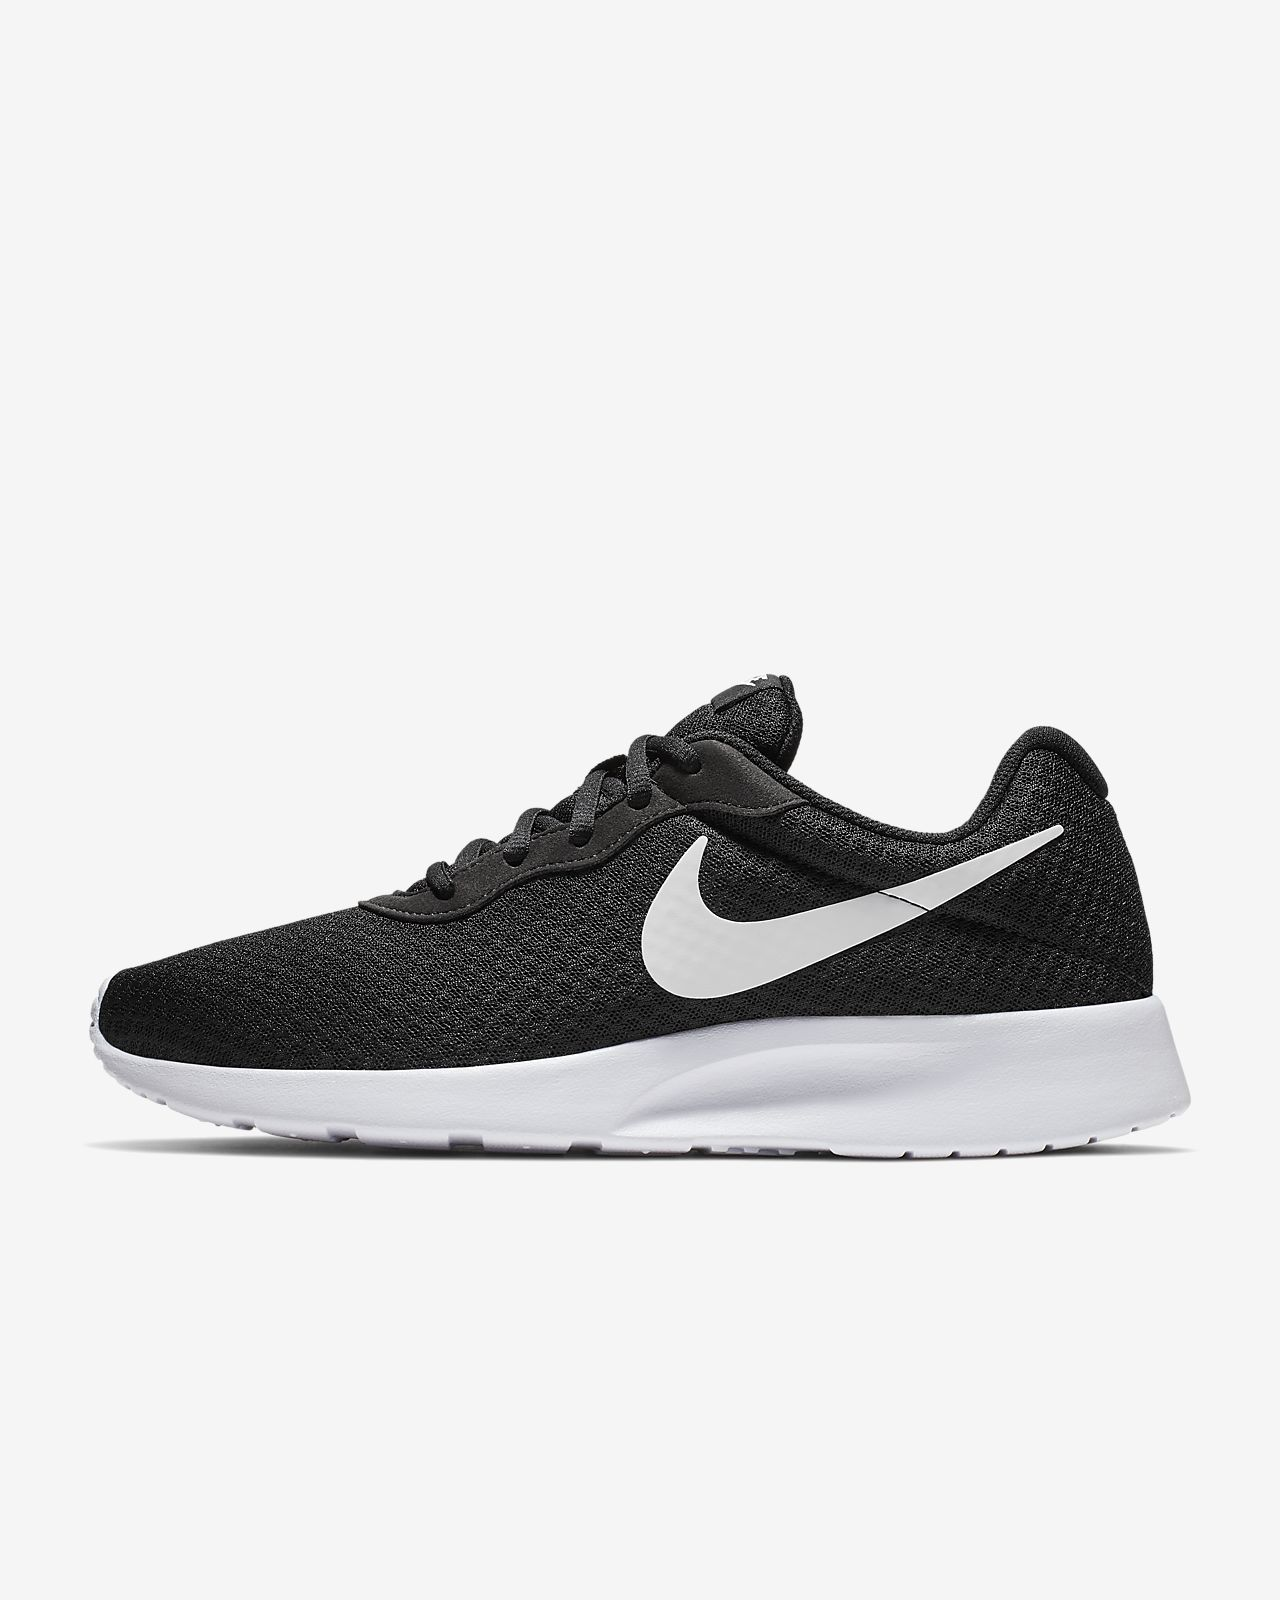 2be60573a079 Low Resolution Nike Tanjun Men s Shoe Nike Tanjun Men s Shoe